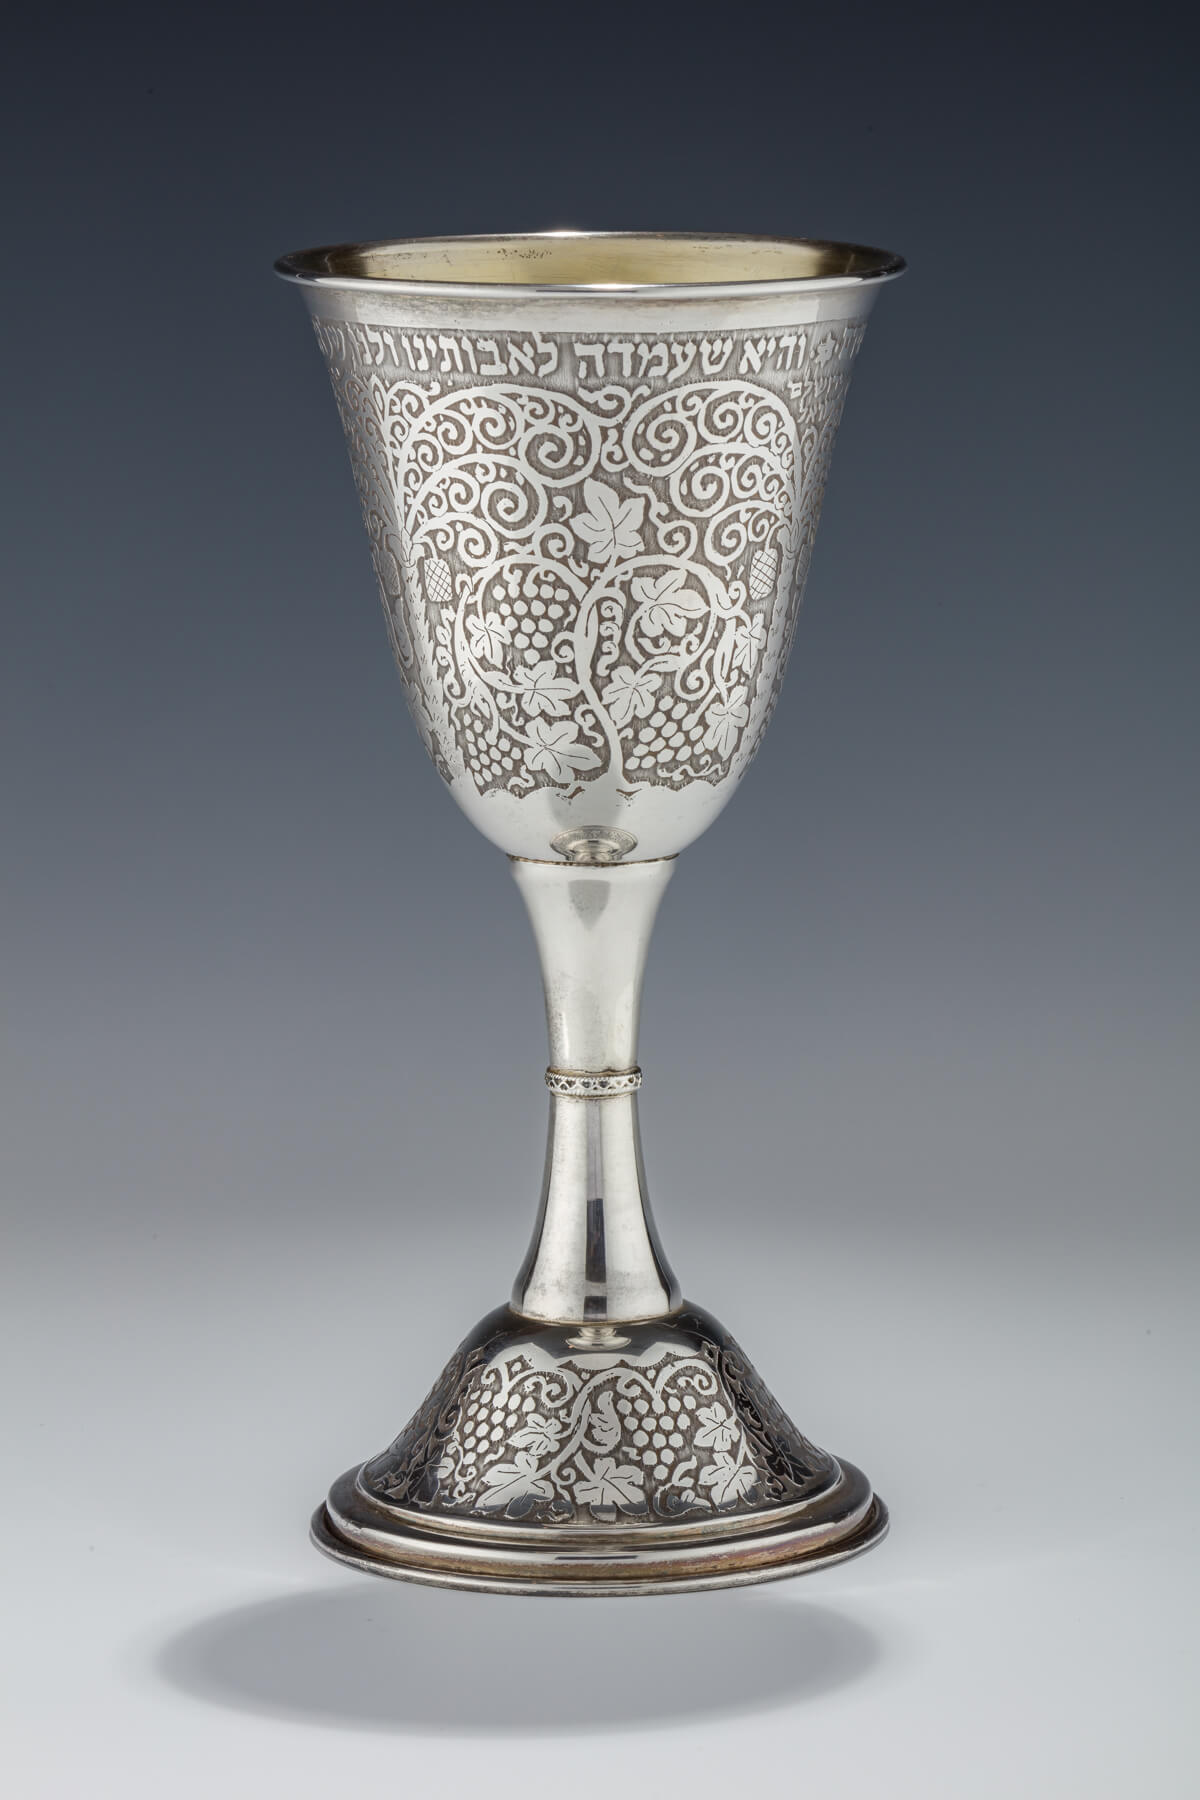 004. A Monumental Sterling Passover Goblet